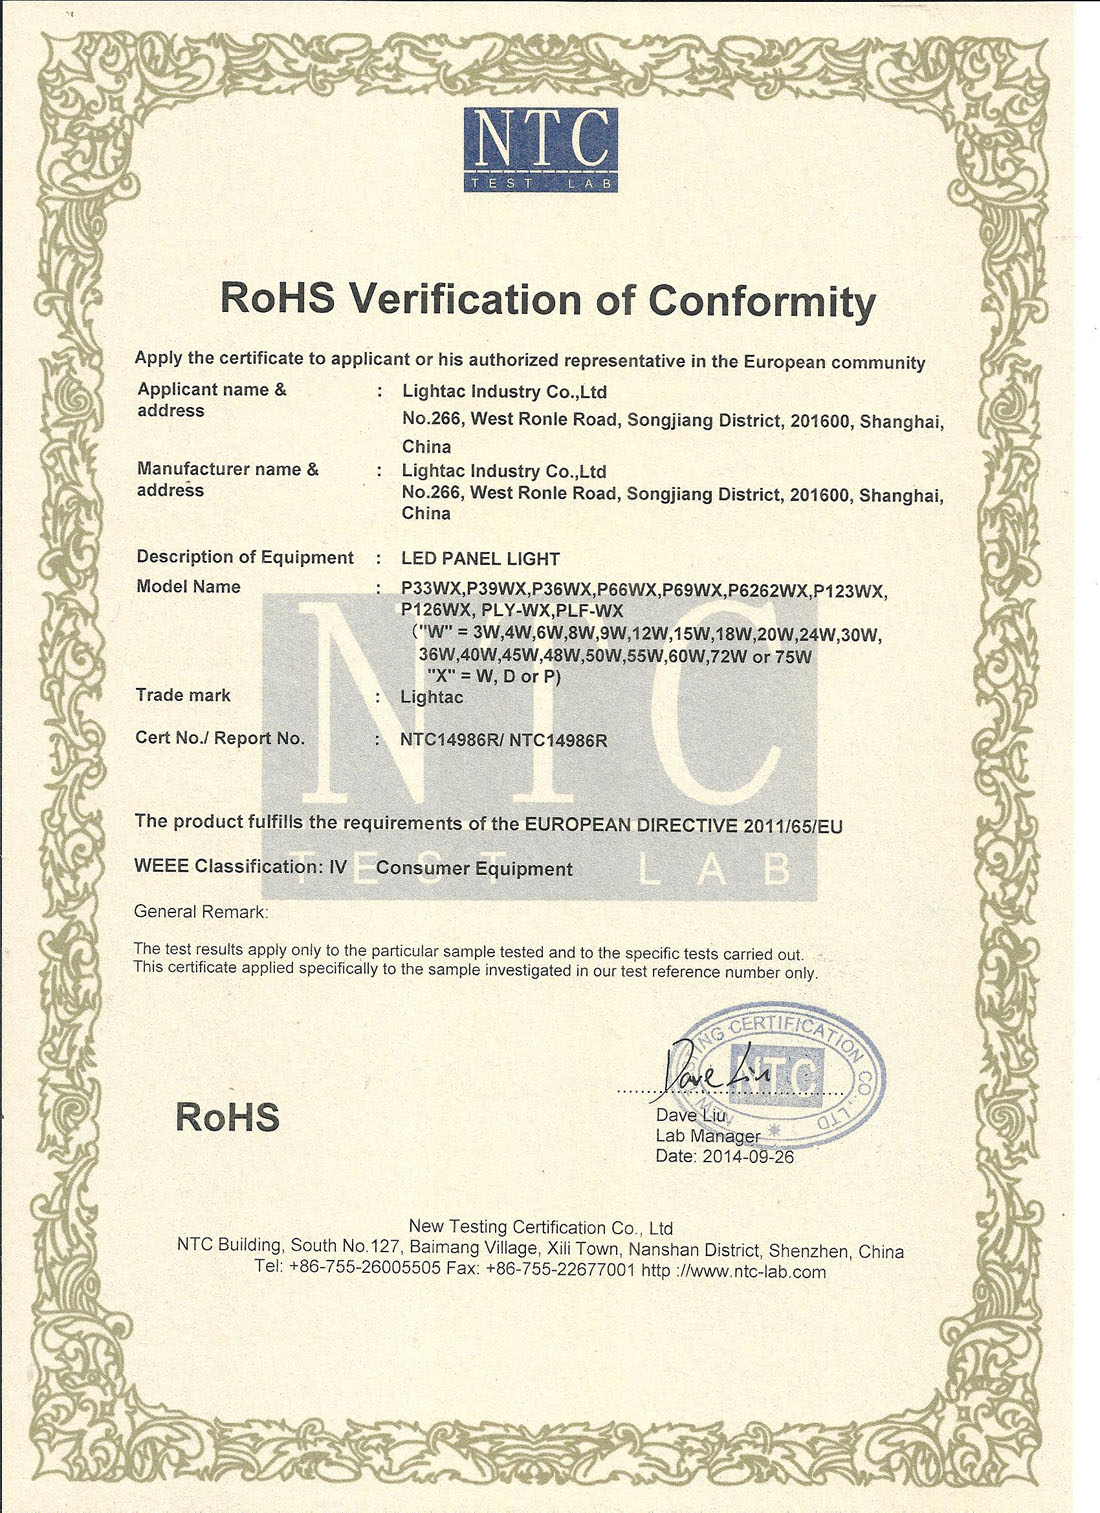 LED Panel Light CE-RoHS Certificate.jpg